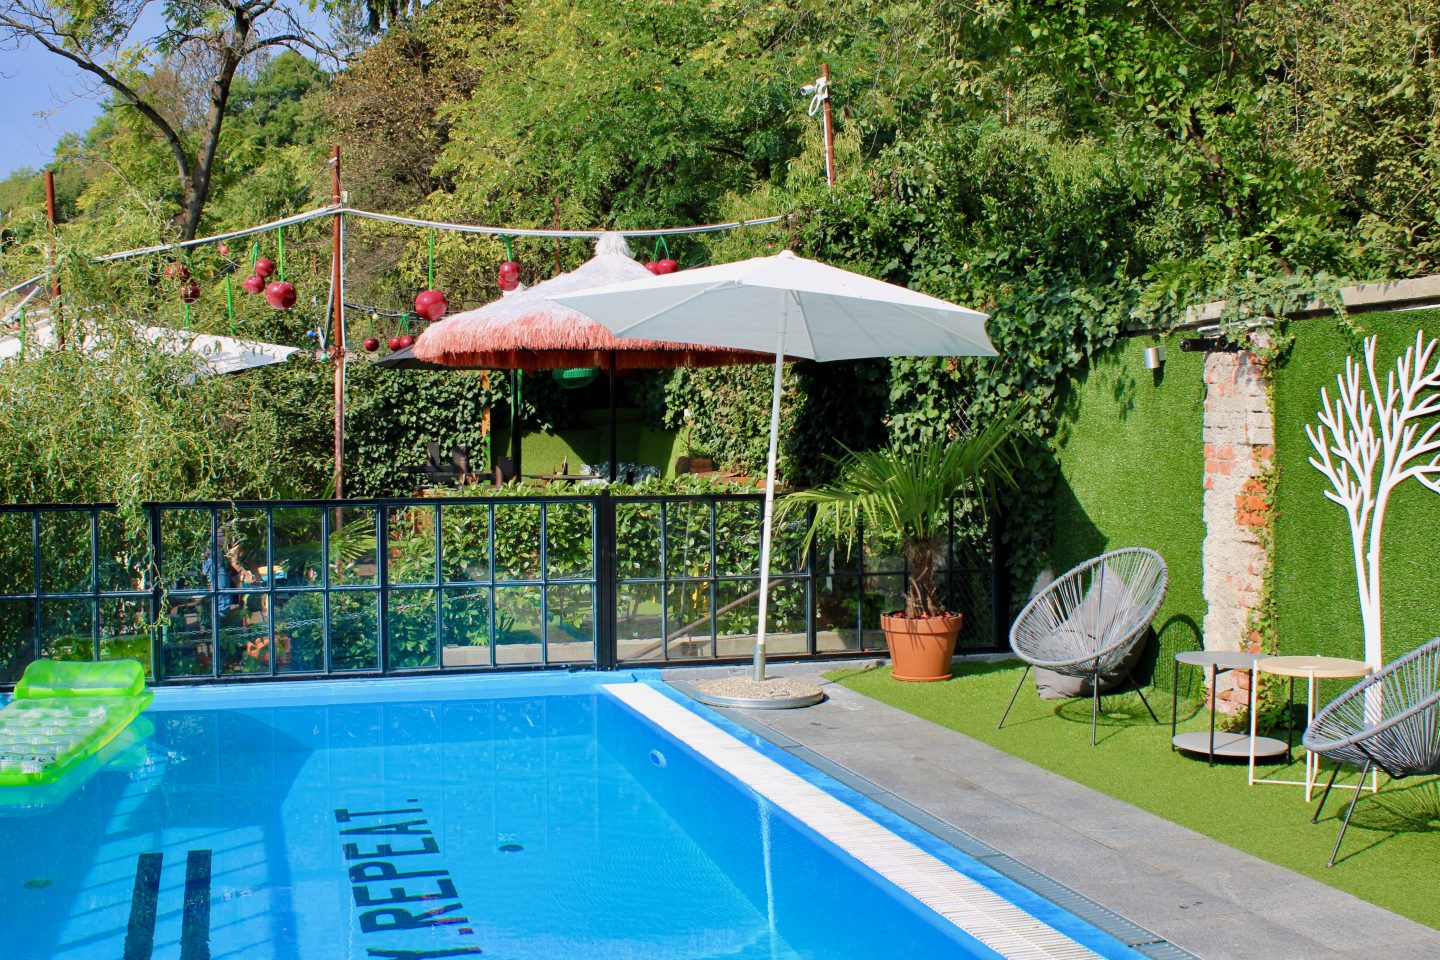 swanky mint hostel zagreb review: the swimming pool at Swanky Mint Hostel